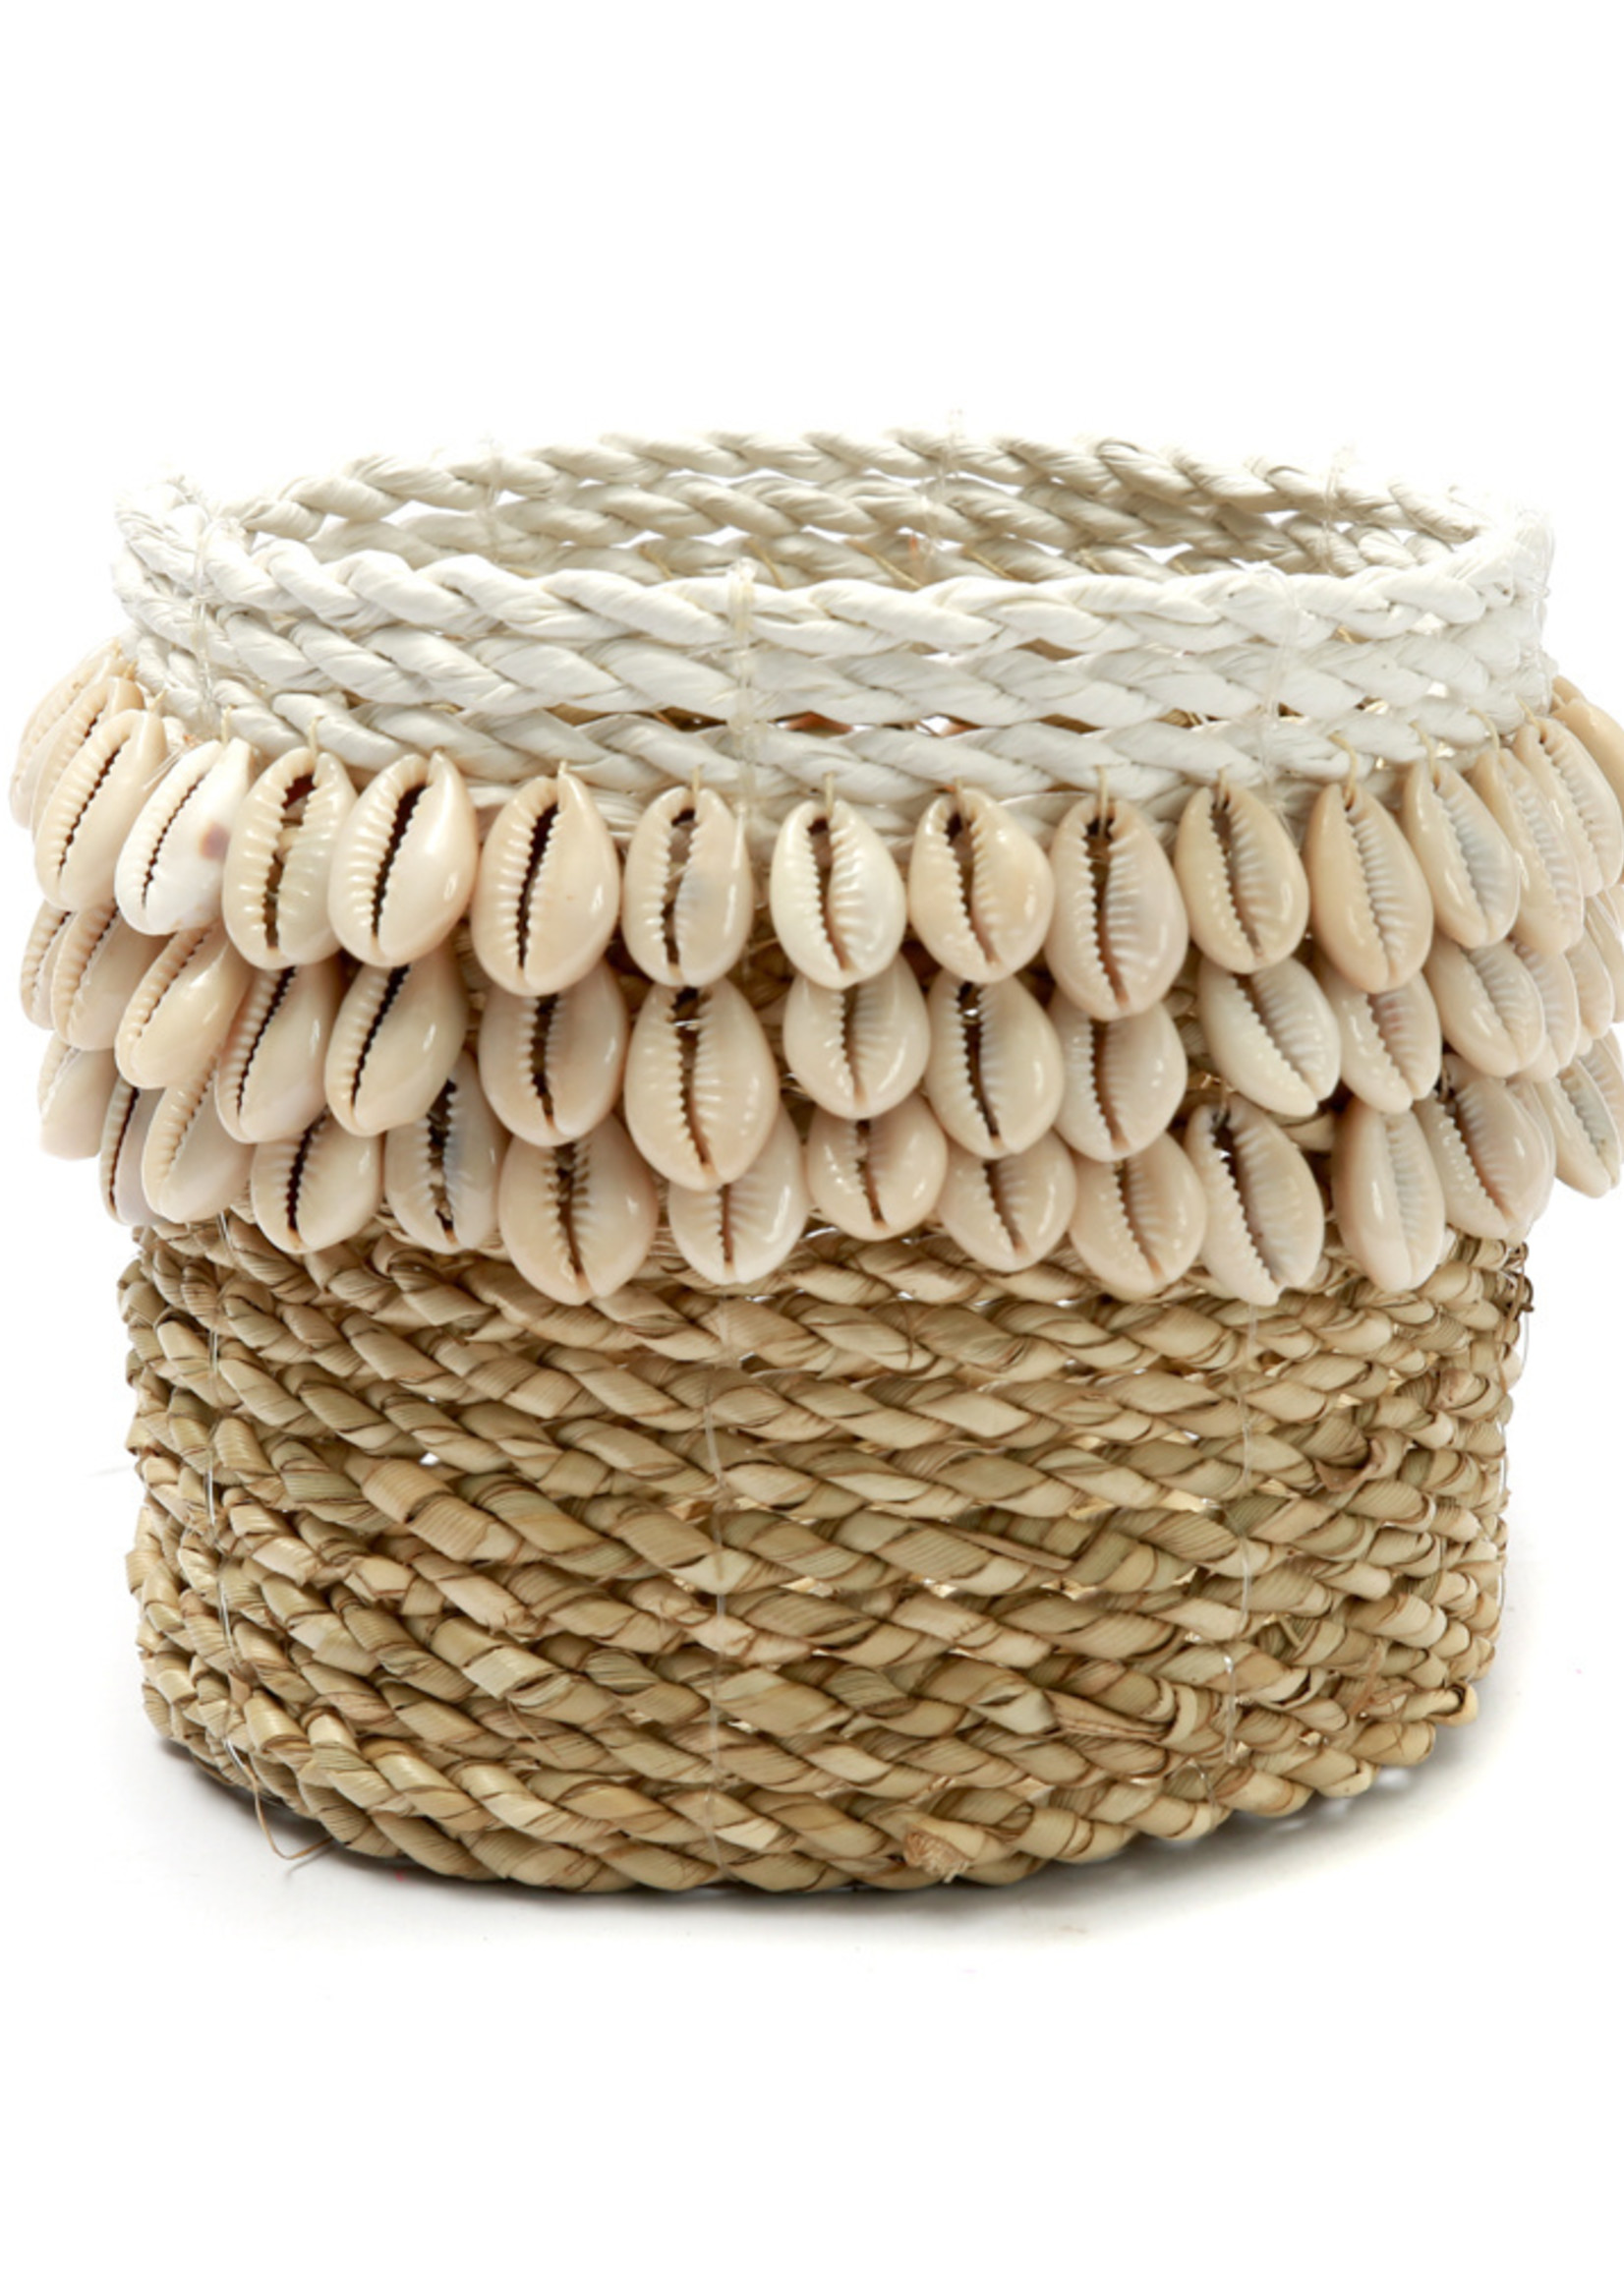 The Weaved Cowrie Basket #1 - Natural White